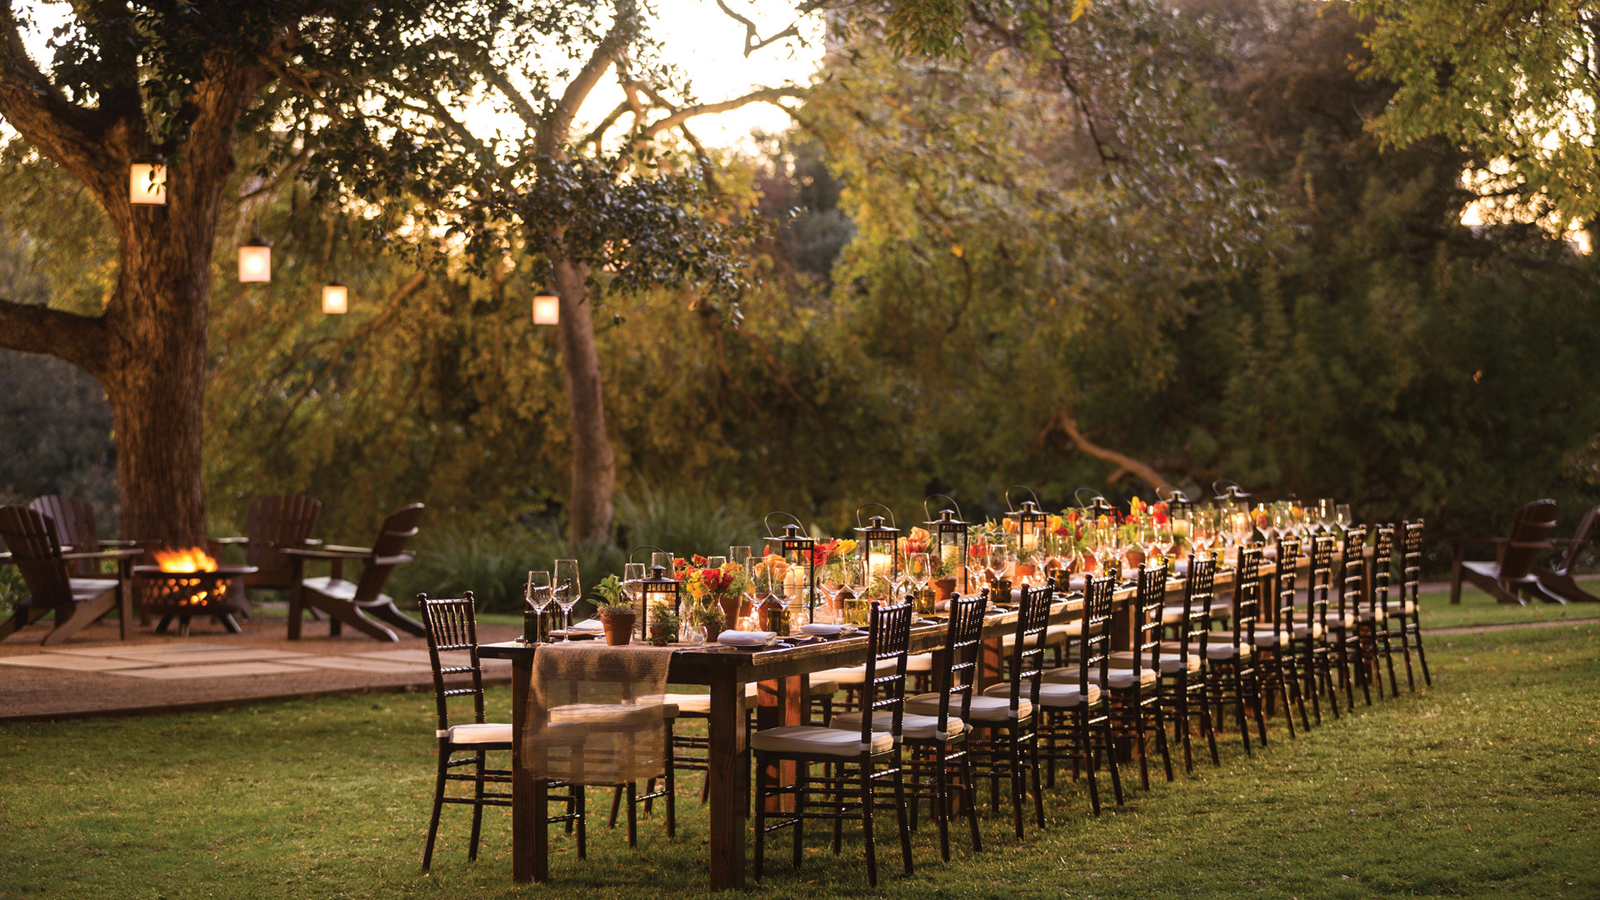 Great Four Seasons East Lawn. This Beautifully Landscaped Outdoor Venue Is The  Perfect Setting For Wedding Ceremonies, Daytime Garden Parties, Luncheons  Or Themed ...